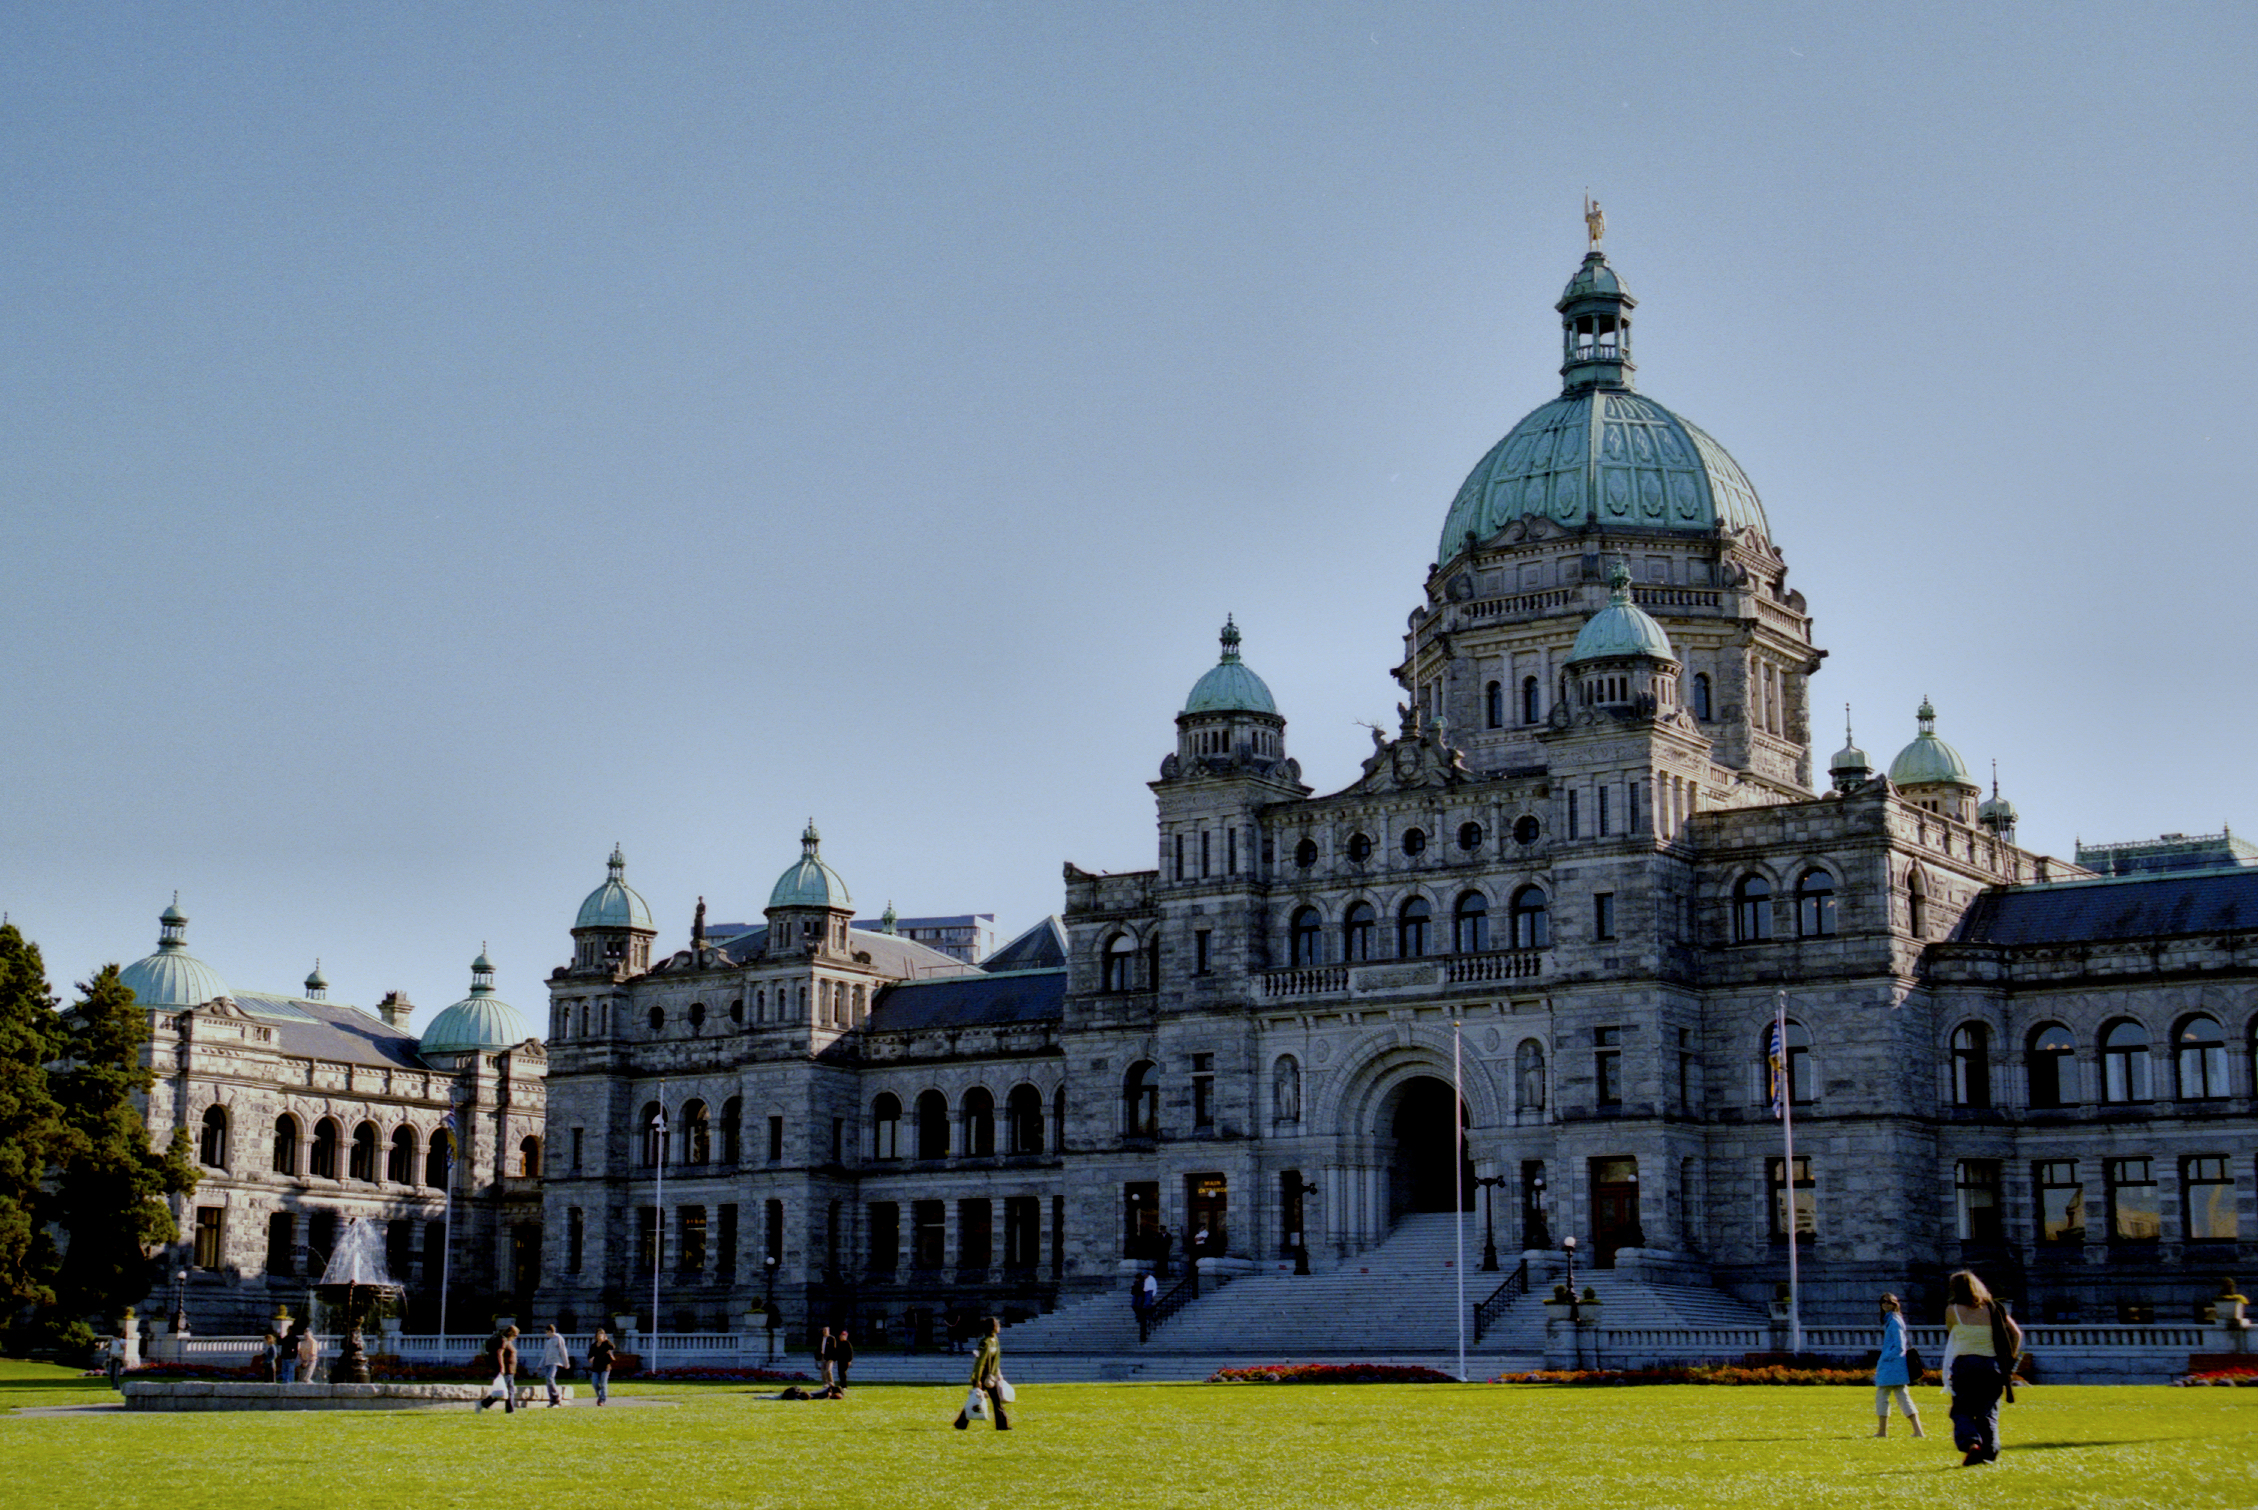 More education needed on BC electoral reform: MLA Shypitka